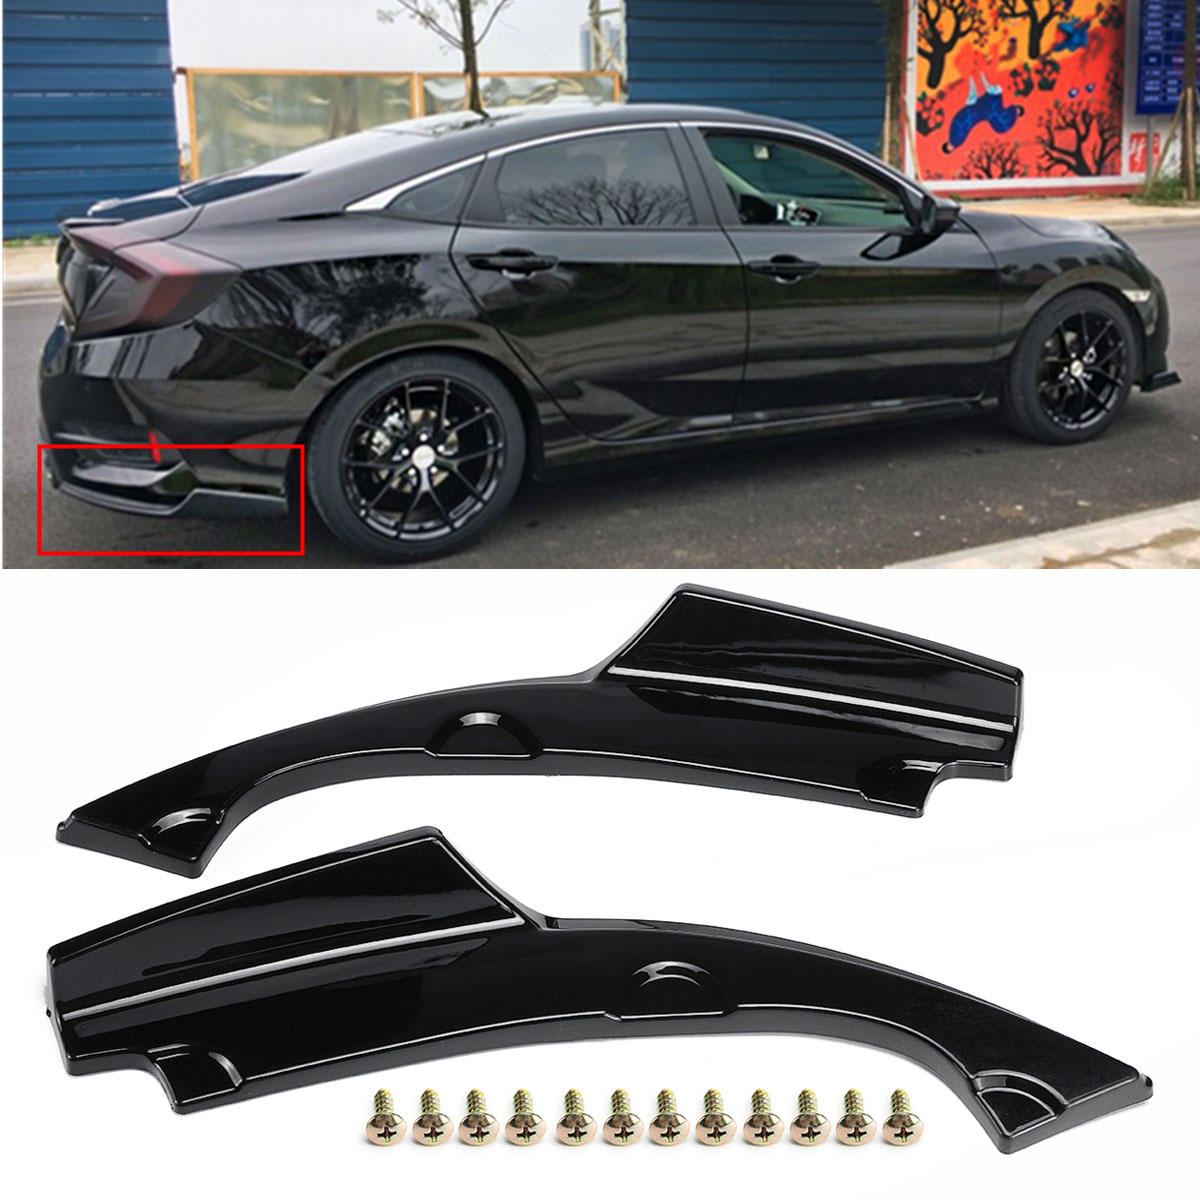 2Pcs Car Rear Bumper  Lower Corner Valance Covers Splitter Spoilers Apron Corner Valance for Honda for Civic 4DR 2016-2018